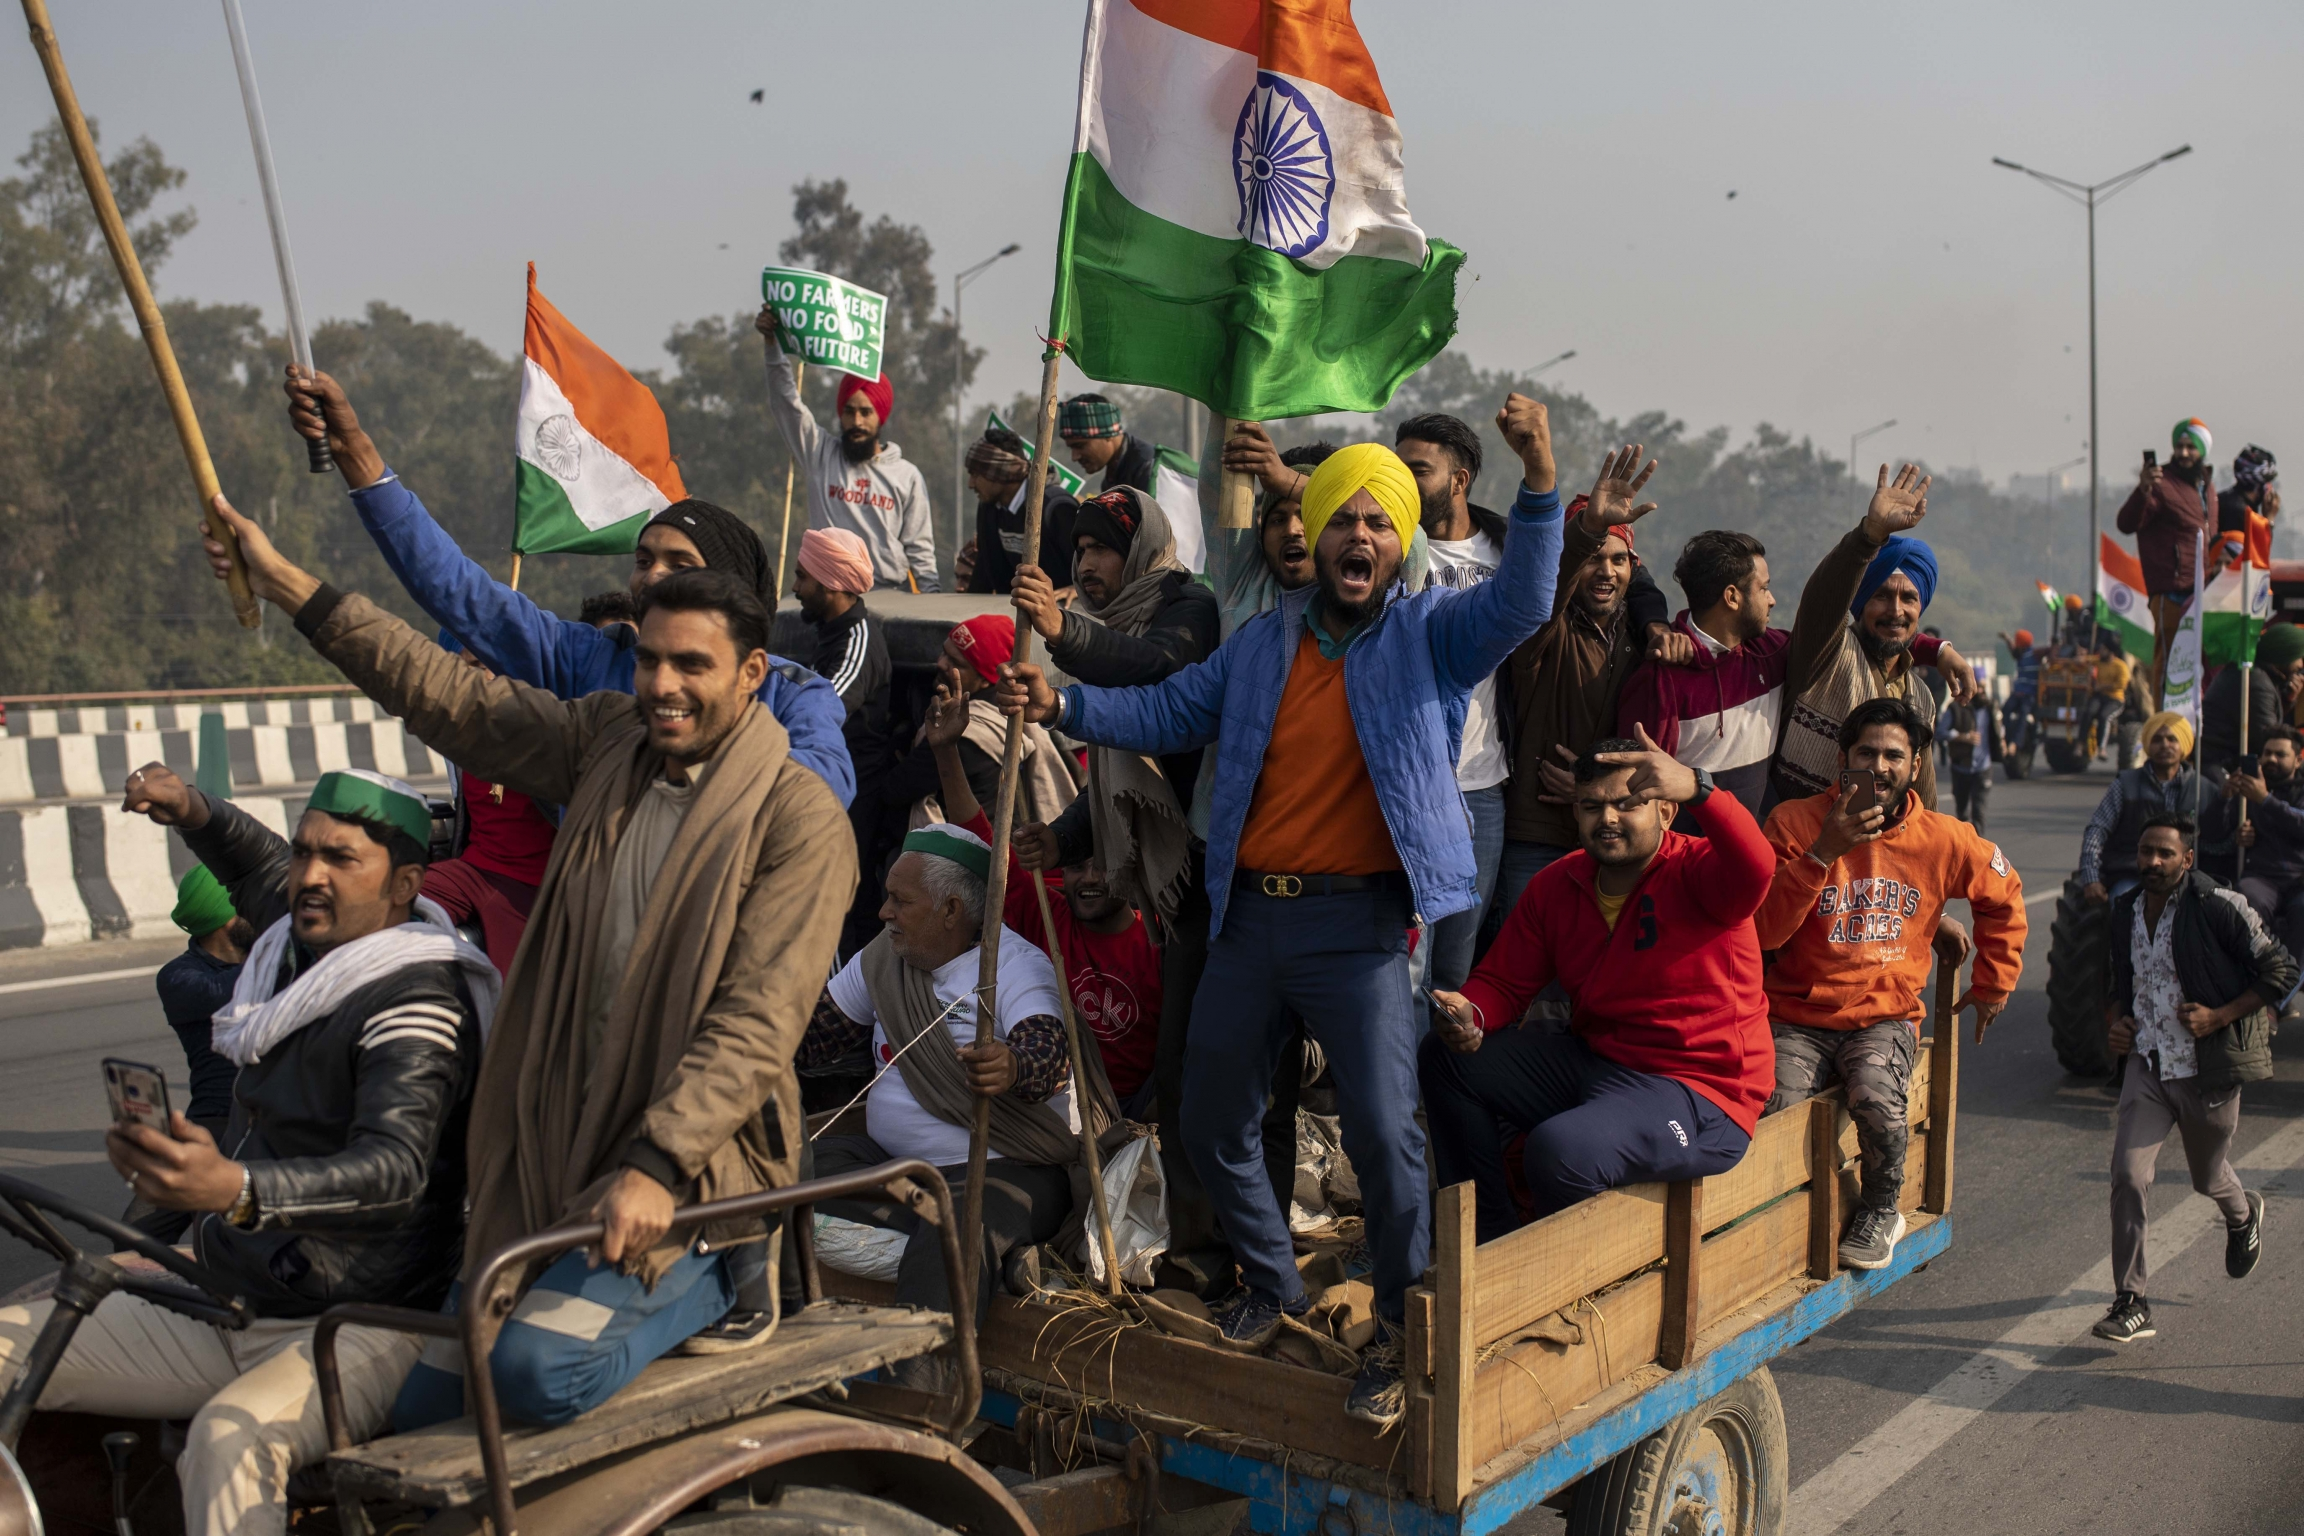 Tens of thousands of farmers drove a convoy of tractors into the Indian capital as the nation celebrated Republic Day on Tuesday in the backdrop of agricultural protests that have grown into a rebellion and rattled the government.